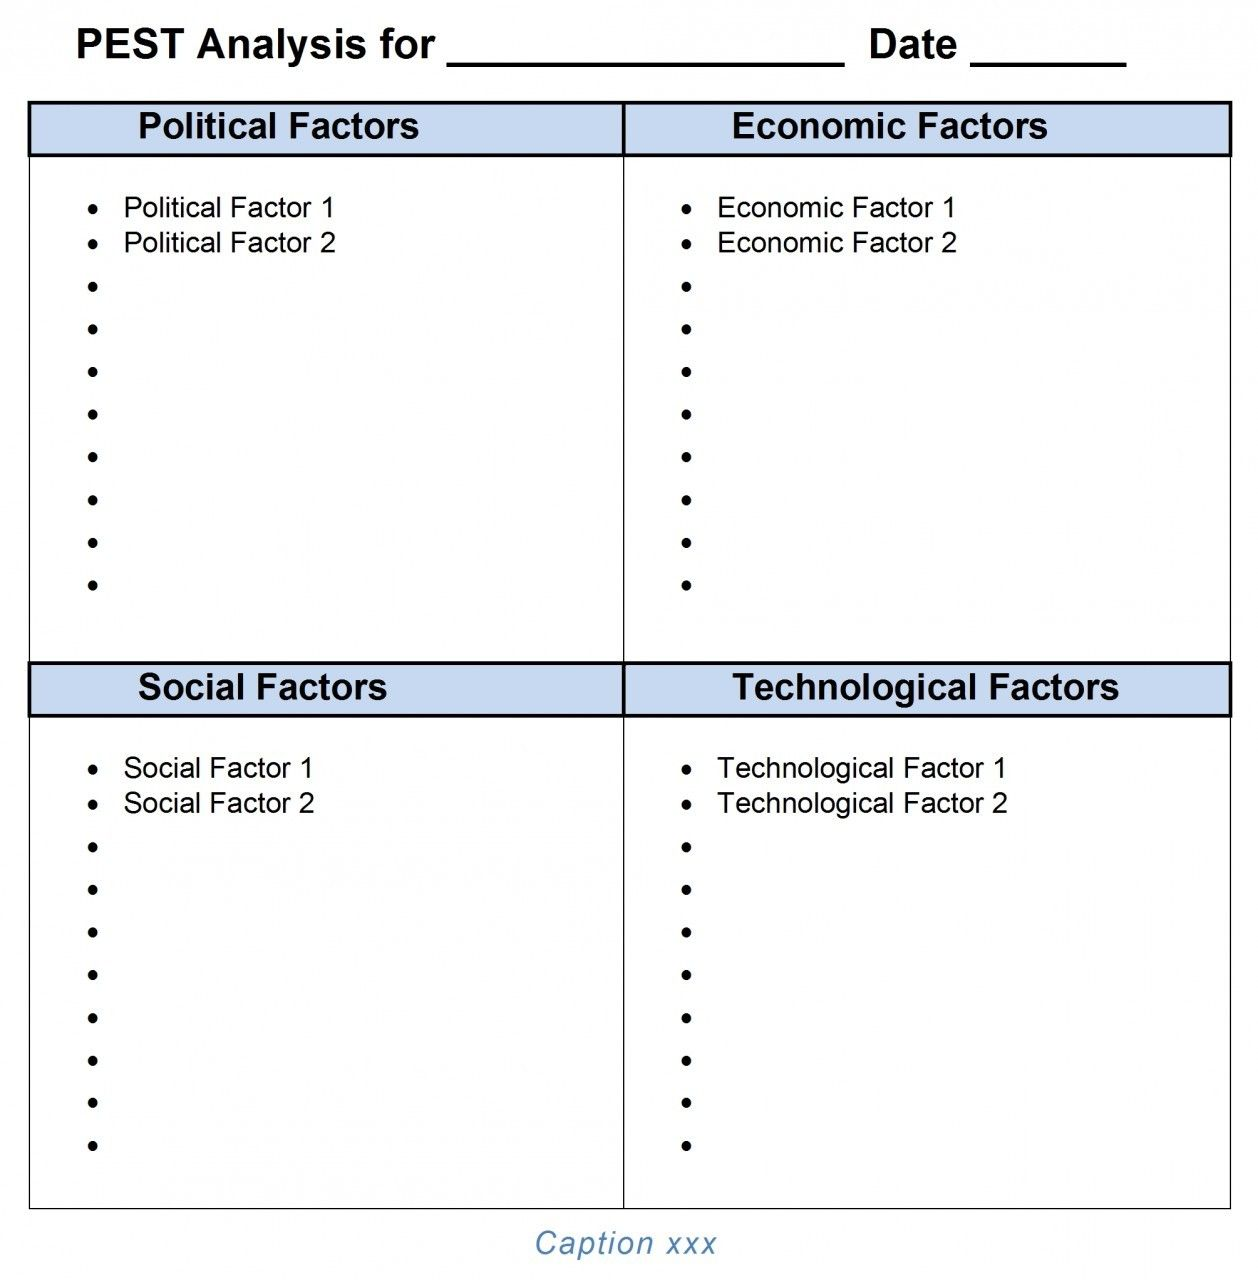 PEST Analysis Template Word 2007, 2010, 2013 | Tool store and Template